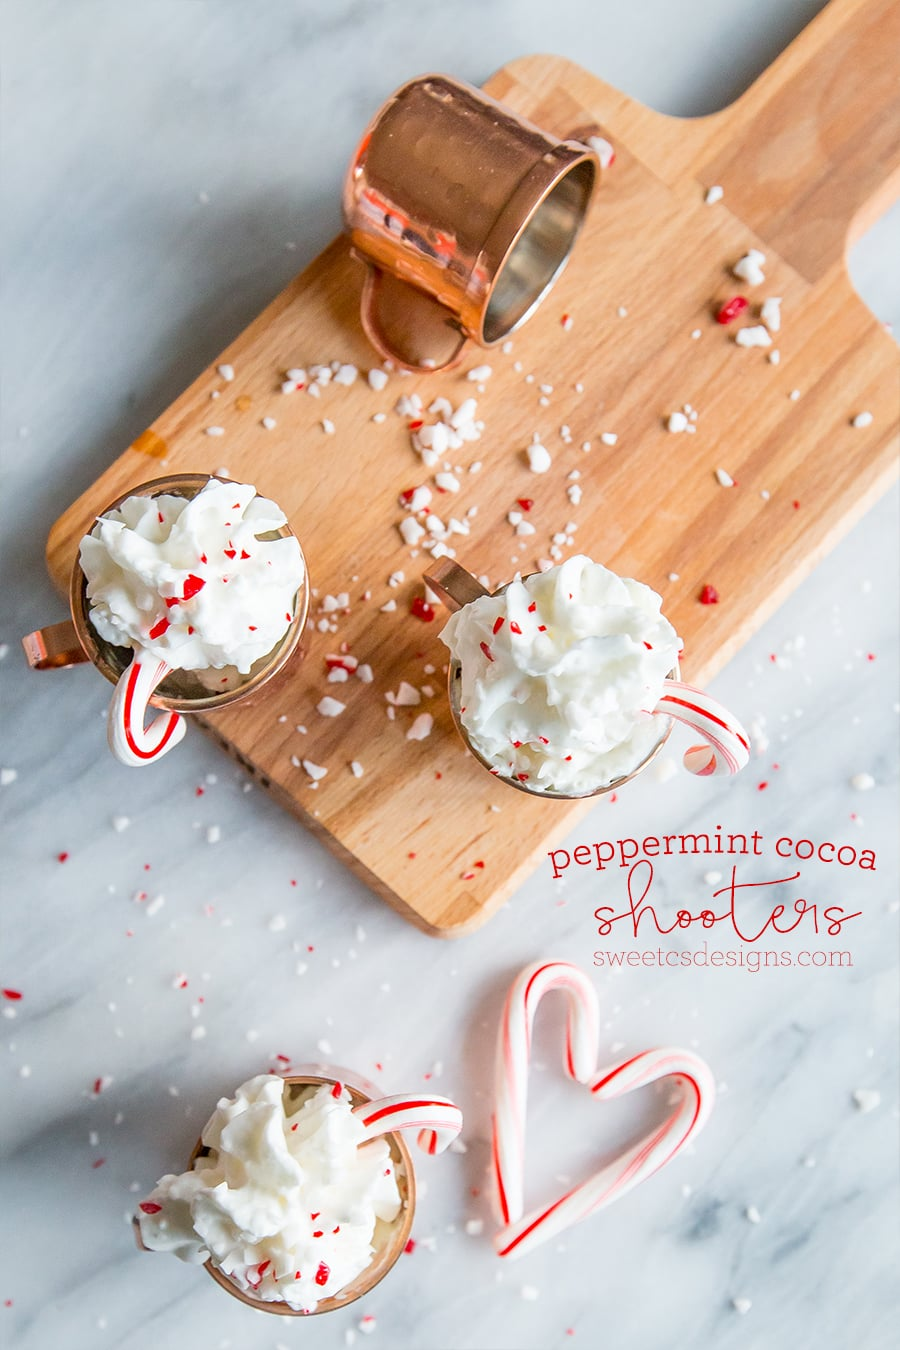 peppermint cocoa shooters- these are a delicious, festive holiday shot everyone loves! Non alcoholic recipe too